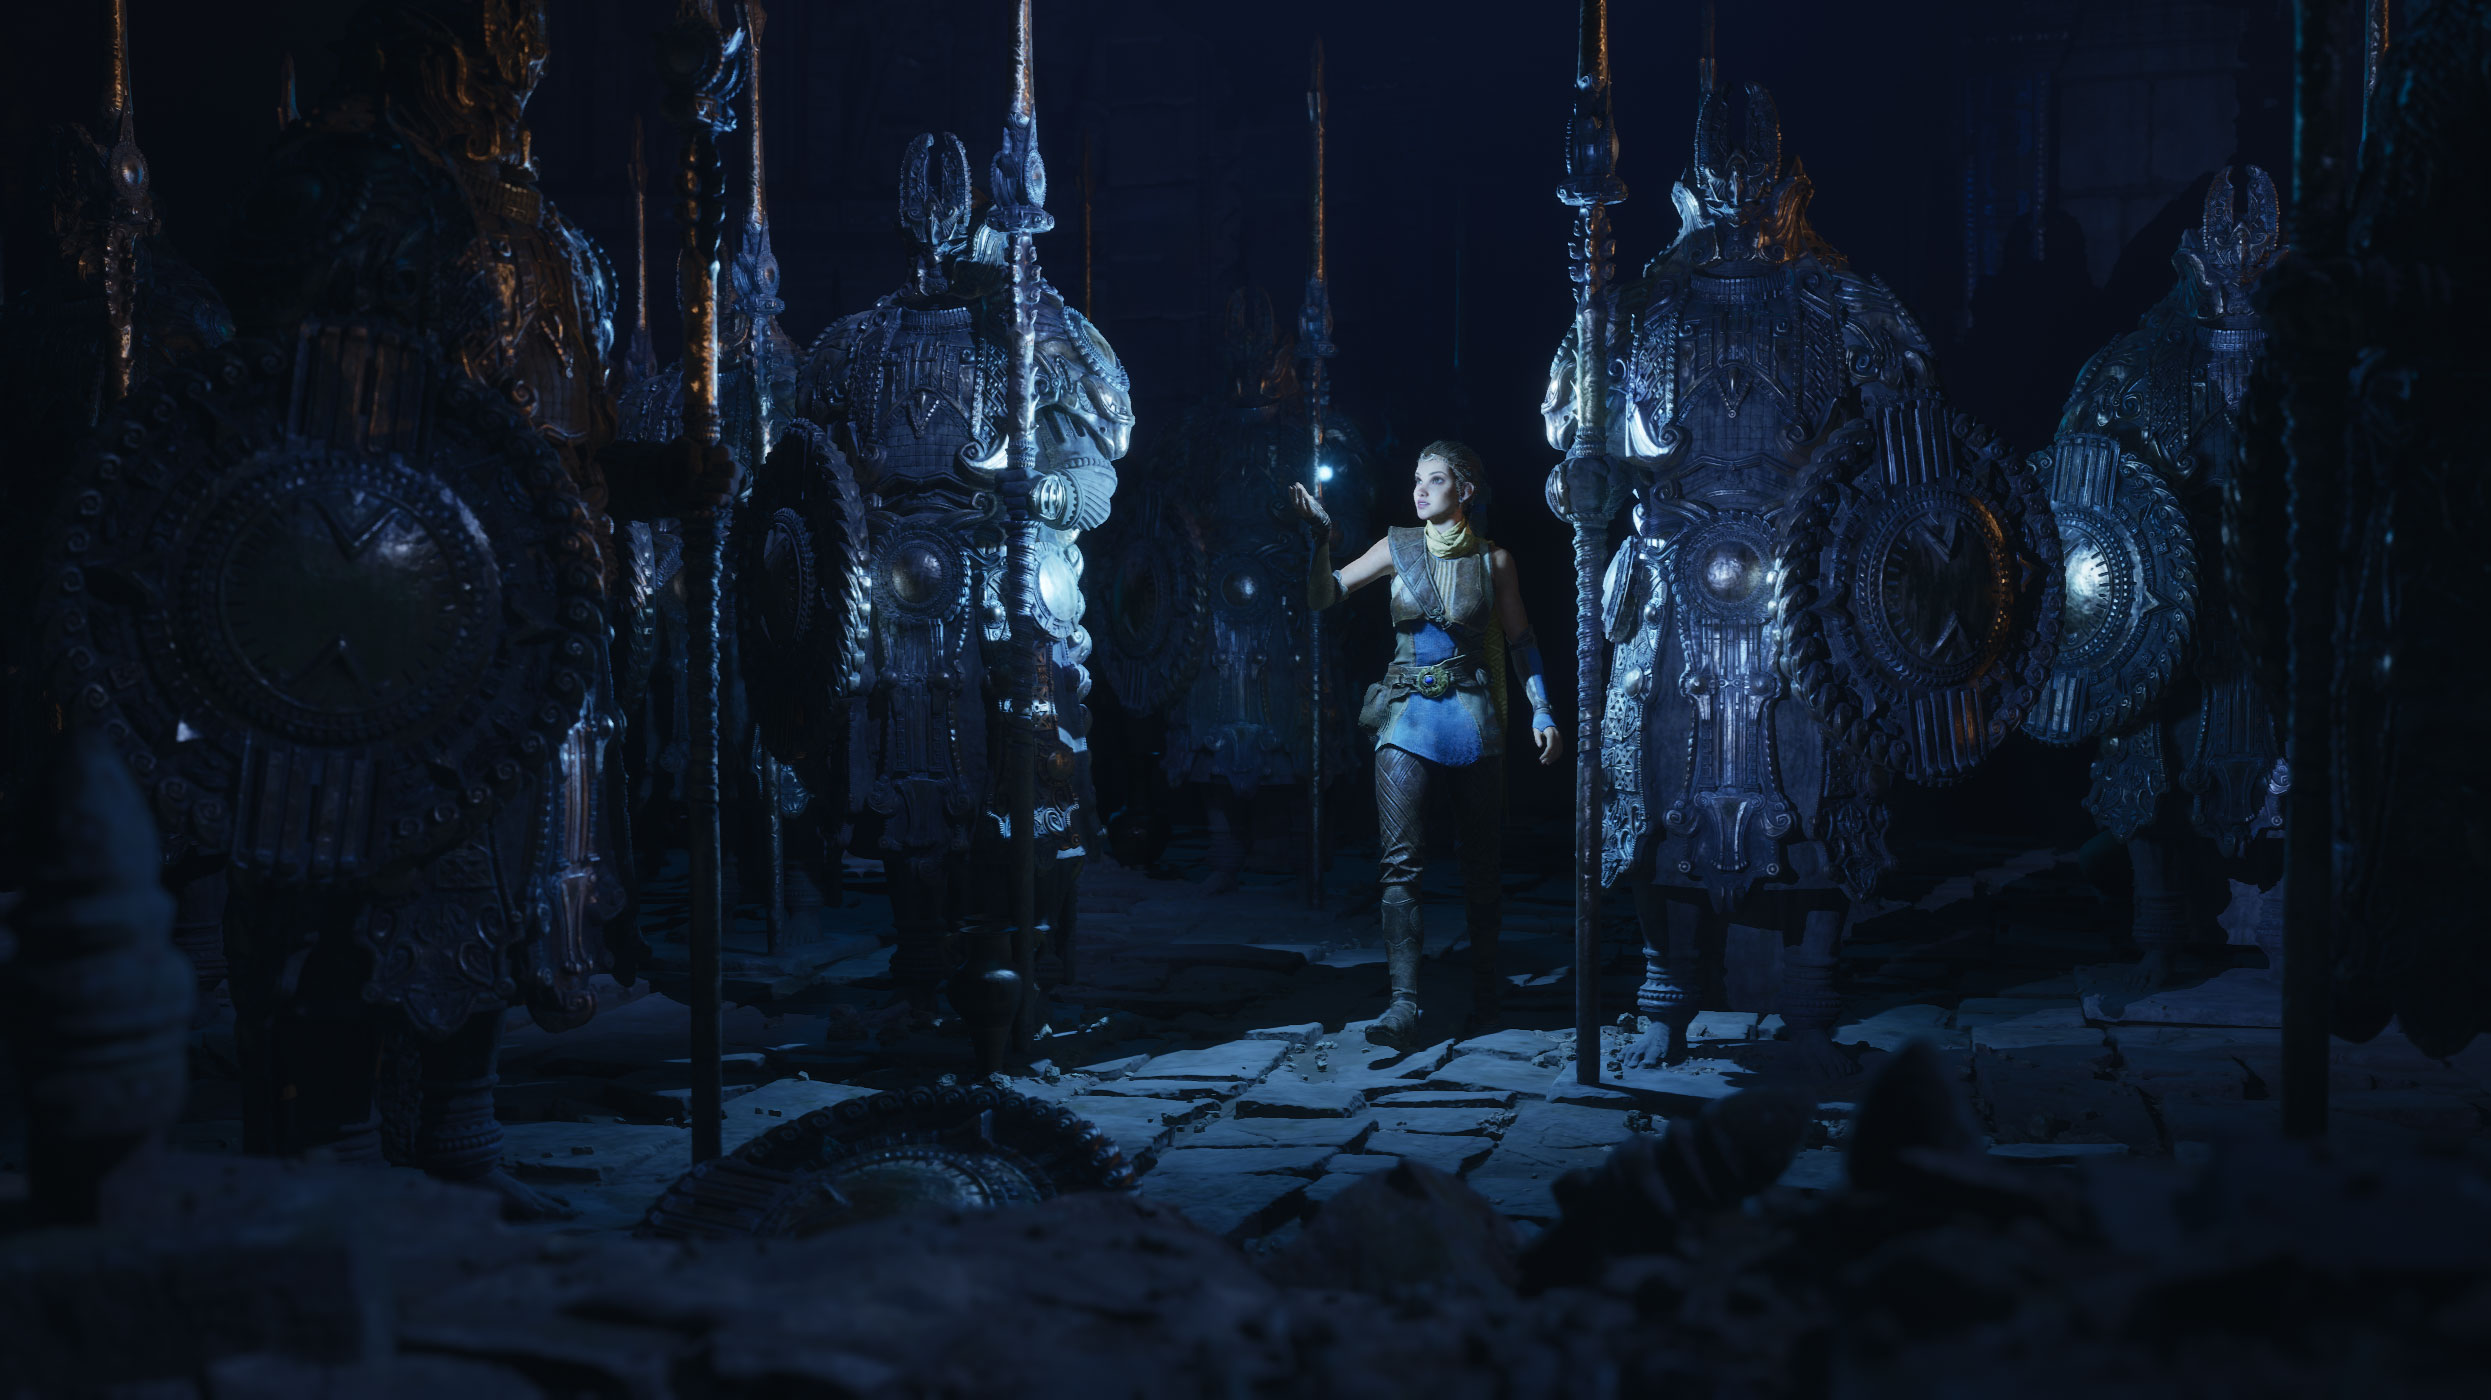 Unreal+Engine%2Fblog%2Fa first look at unreal engine 5%2FUnreal Engine 5 Gallery 3 2491x1400 b9dc65762824a9aa810ffda0fcaf389469ab129f - Unreal Engine 5 Shines for PS5 in Reveal from Epic Games